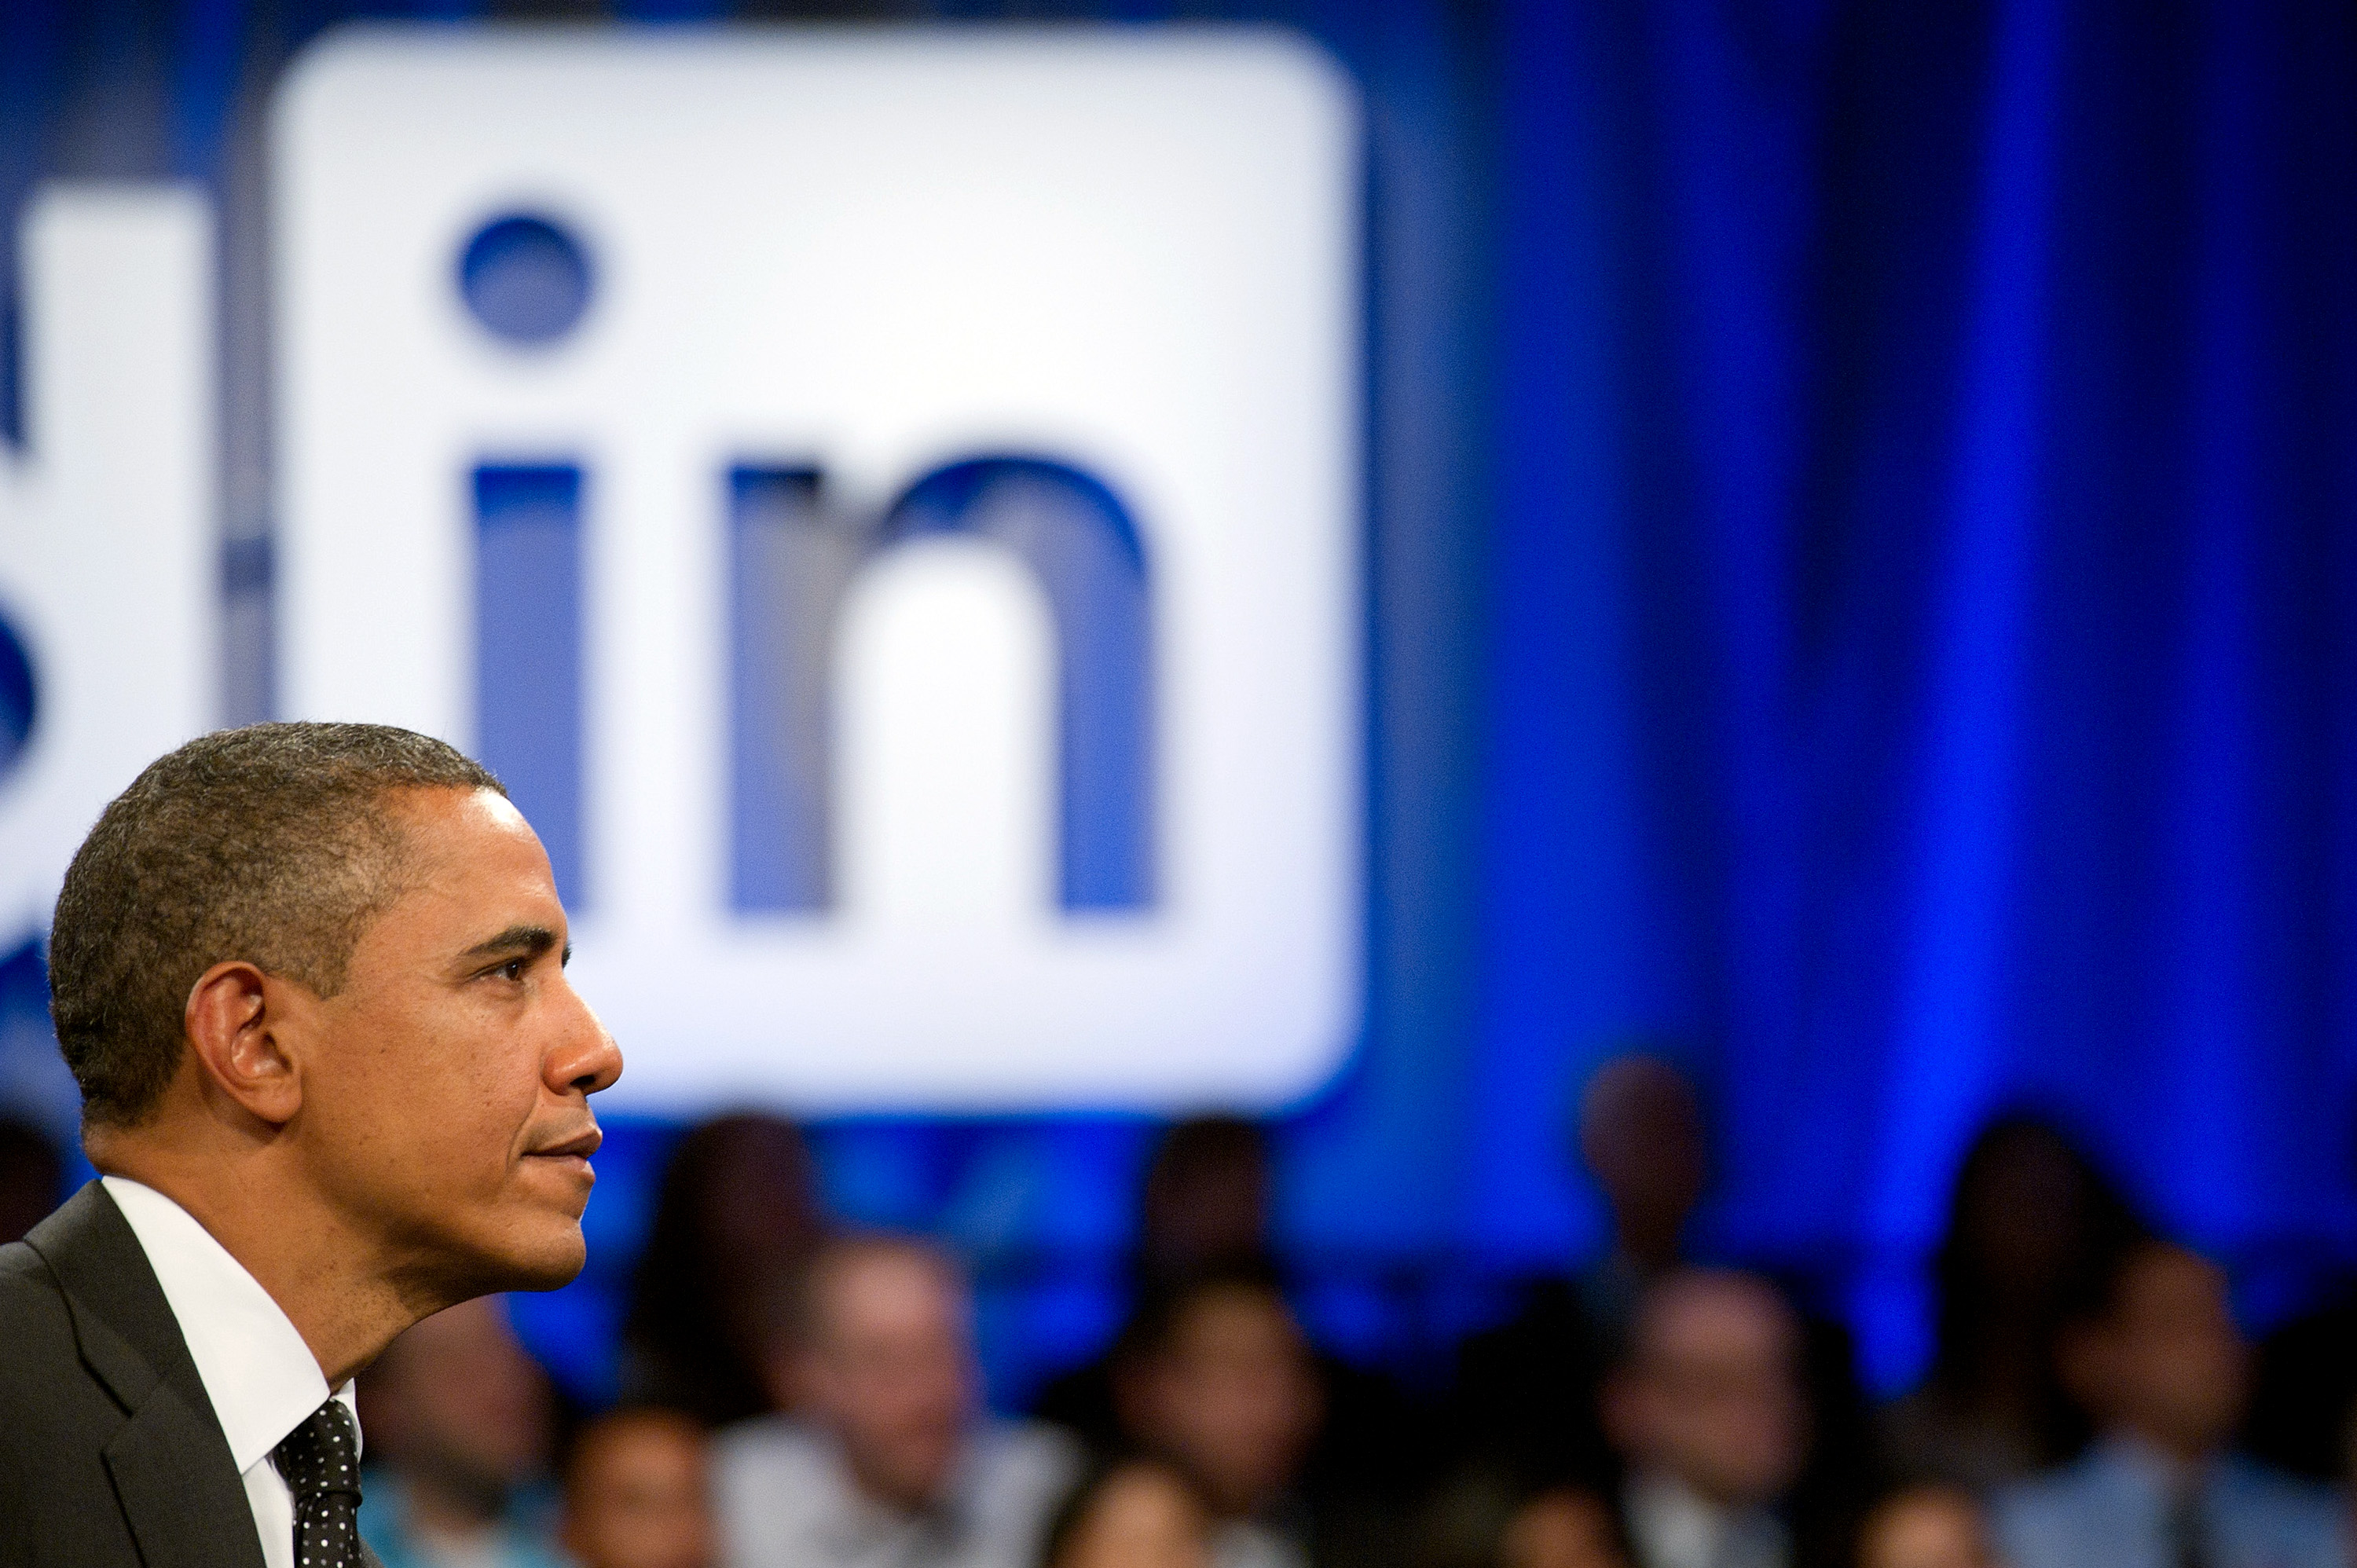 U.S. President Barack Obama listens during a town hall event sponsored by LinkedIn Corp. in Mountain View, California, U.S., on Monday, Sept. 26, 2011.